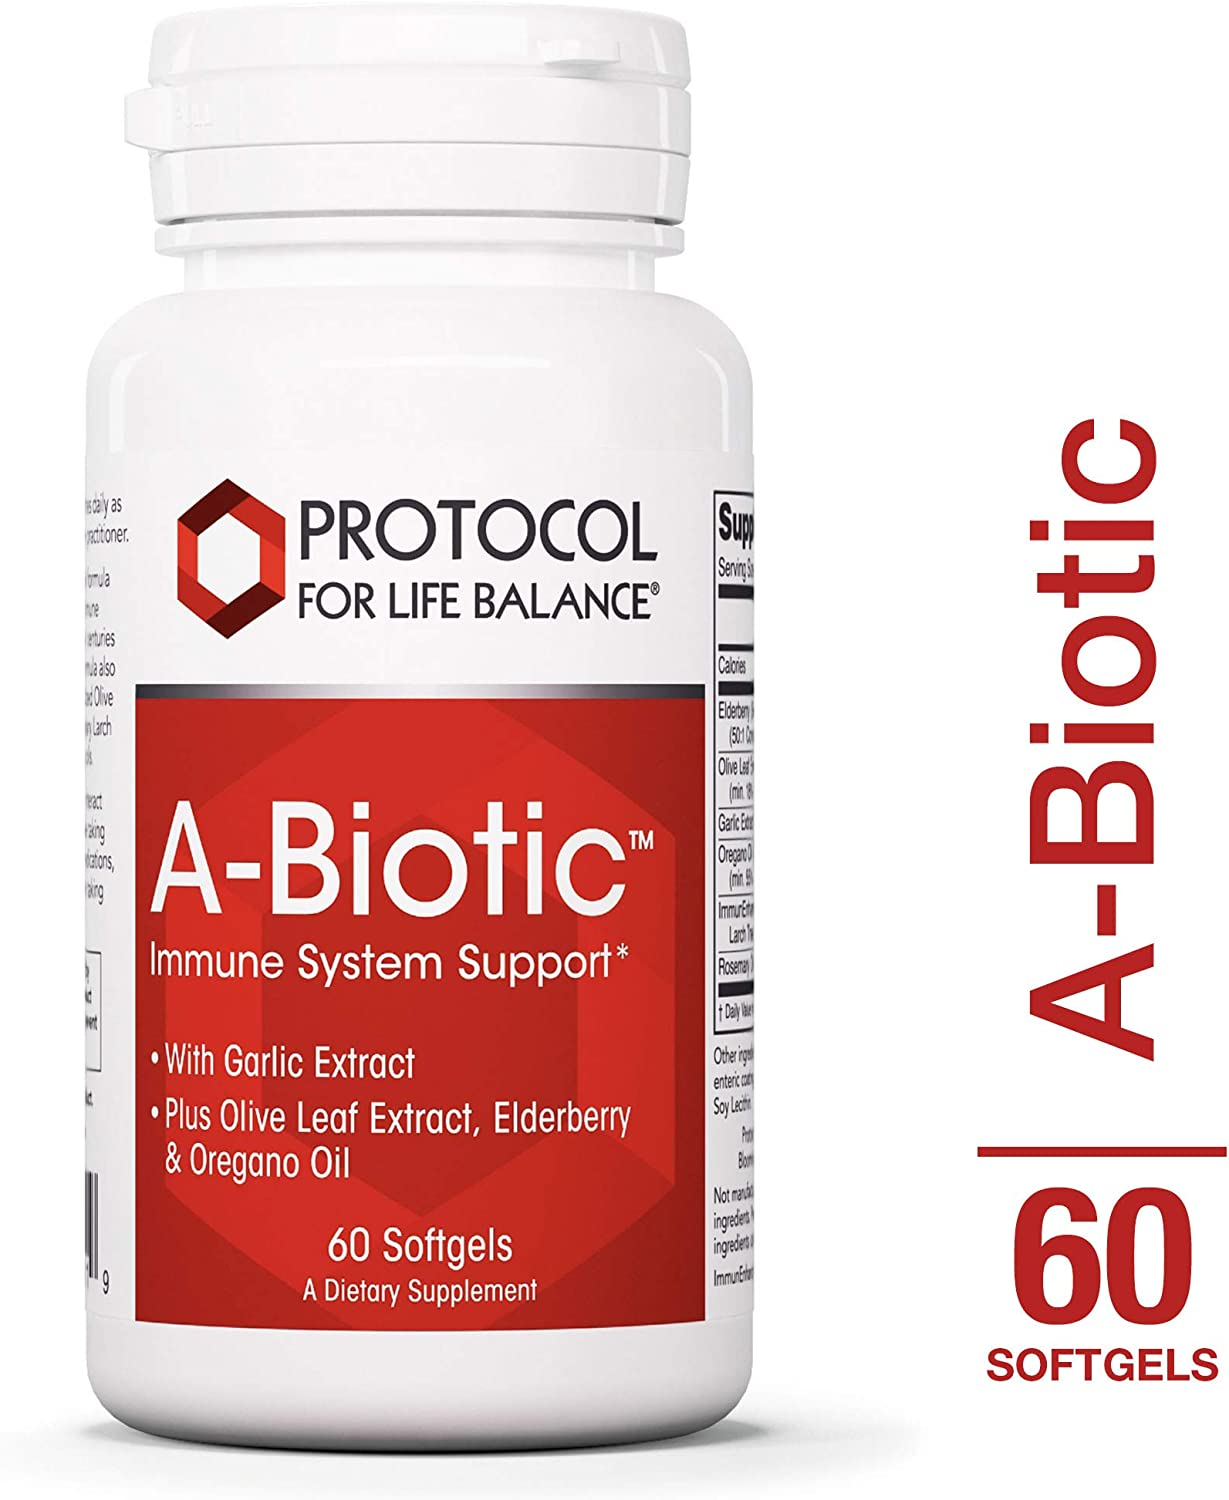 Protocol For Life Balance – A-Biotic – Immune System Support, Healthy Digestion, with Garlic, Olive Leaf, Elderberry Oregano Oil – 60 Softgels